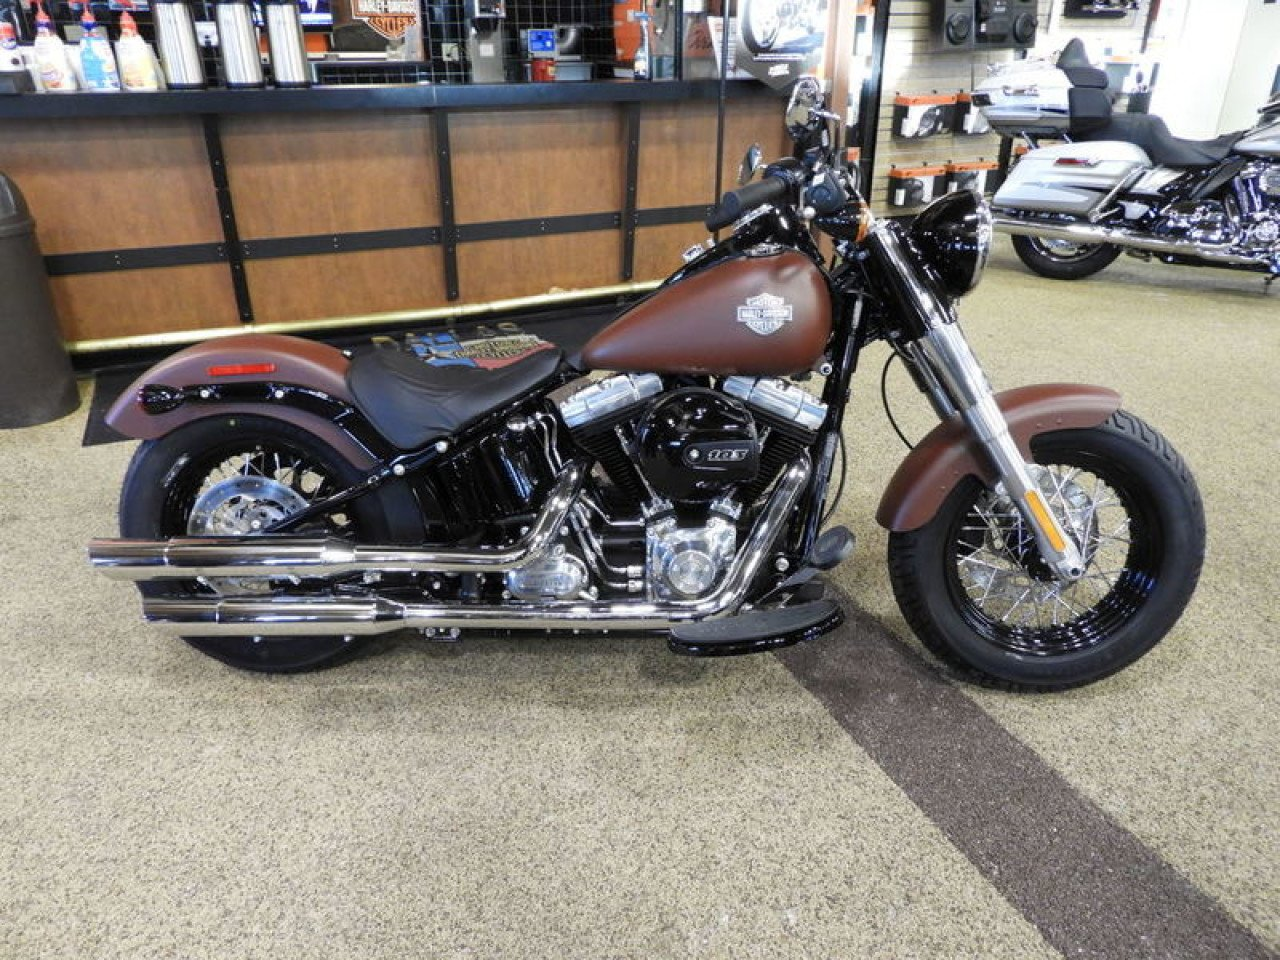 2018 Softail Slim Review >> 2017 Harley-Davidson Softail Slim for sale near Garland, Texas 75041 - Motorcycles on Autotrader